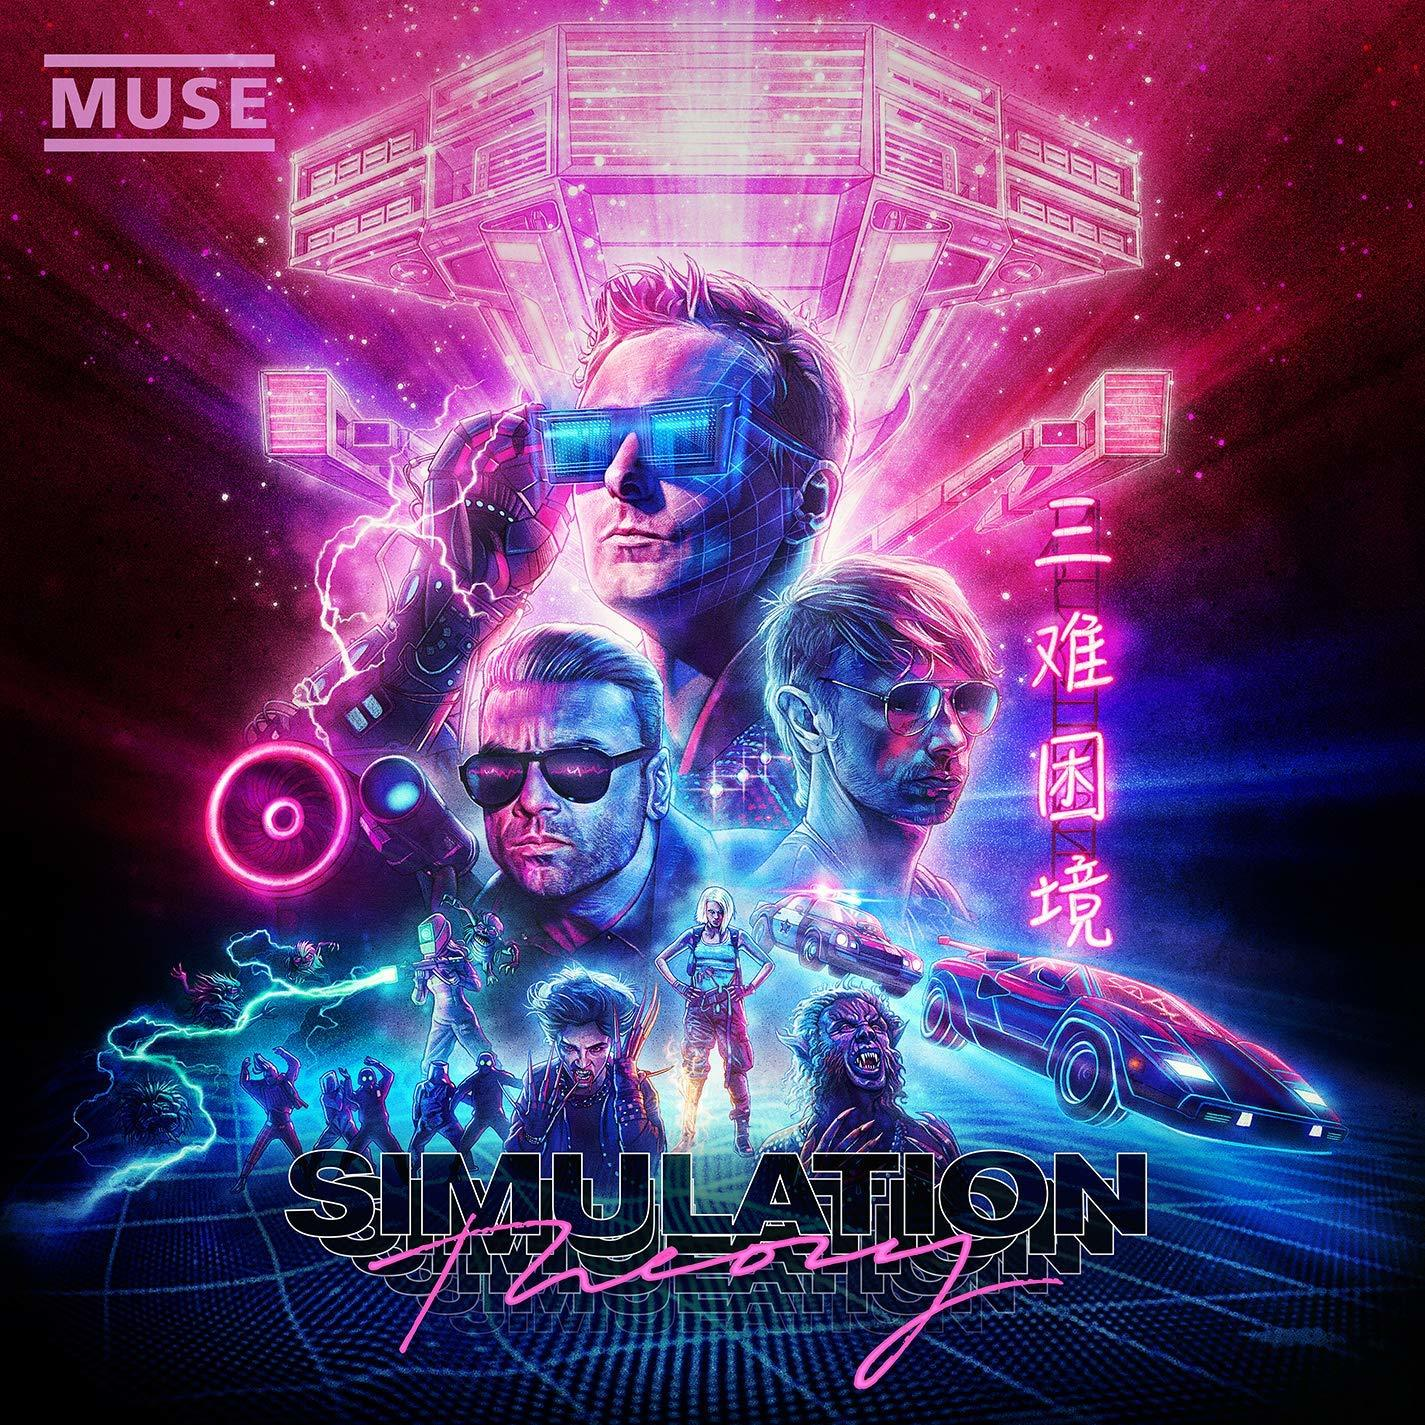 MUSE Simulation Theory (Deluxe Edition) CD.jpg